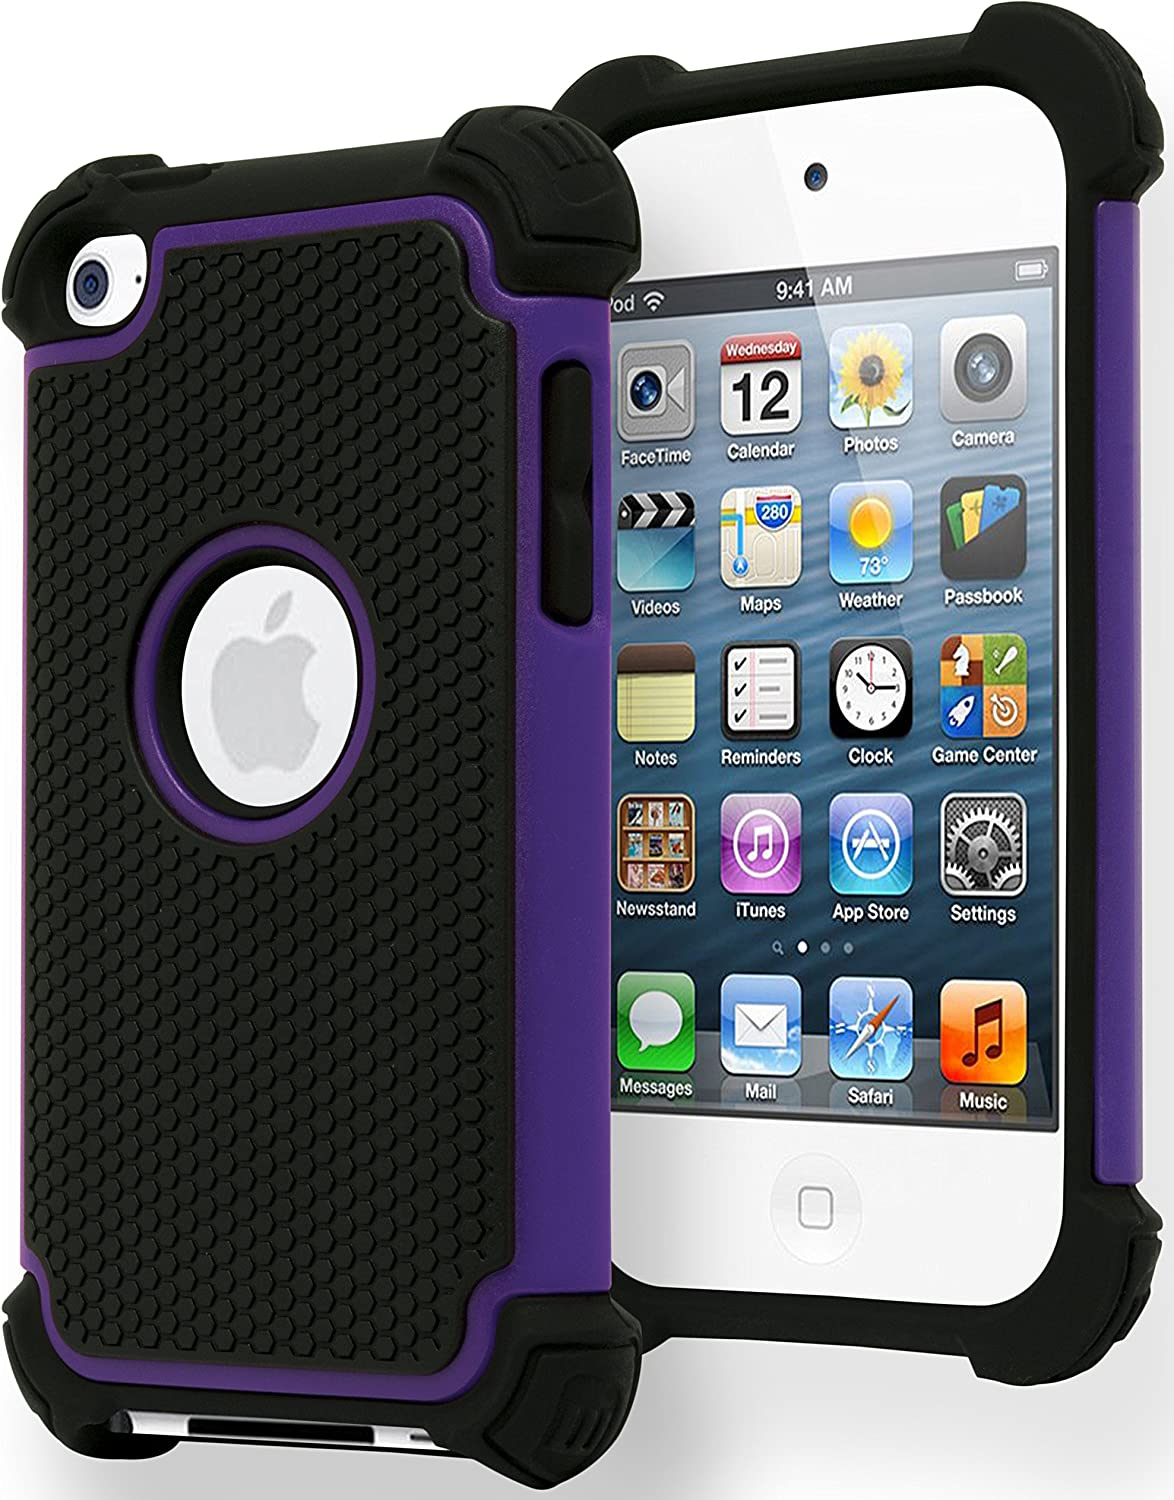 Bastex iPod Touch 4 Case, Hybrid Slim Fit Black Rubber Silicone Cover Hard Plastic Purple & Black Shock Case for Apple iPod Touch 4, 4th Generation